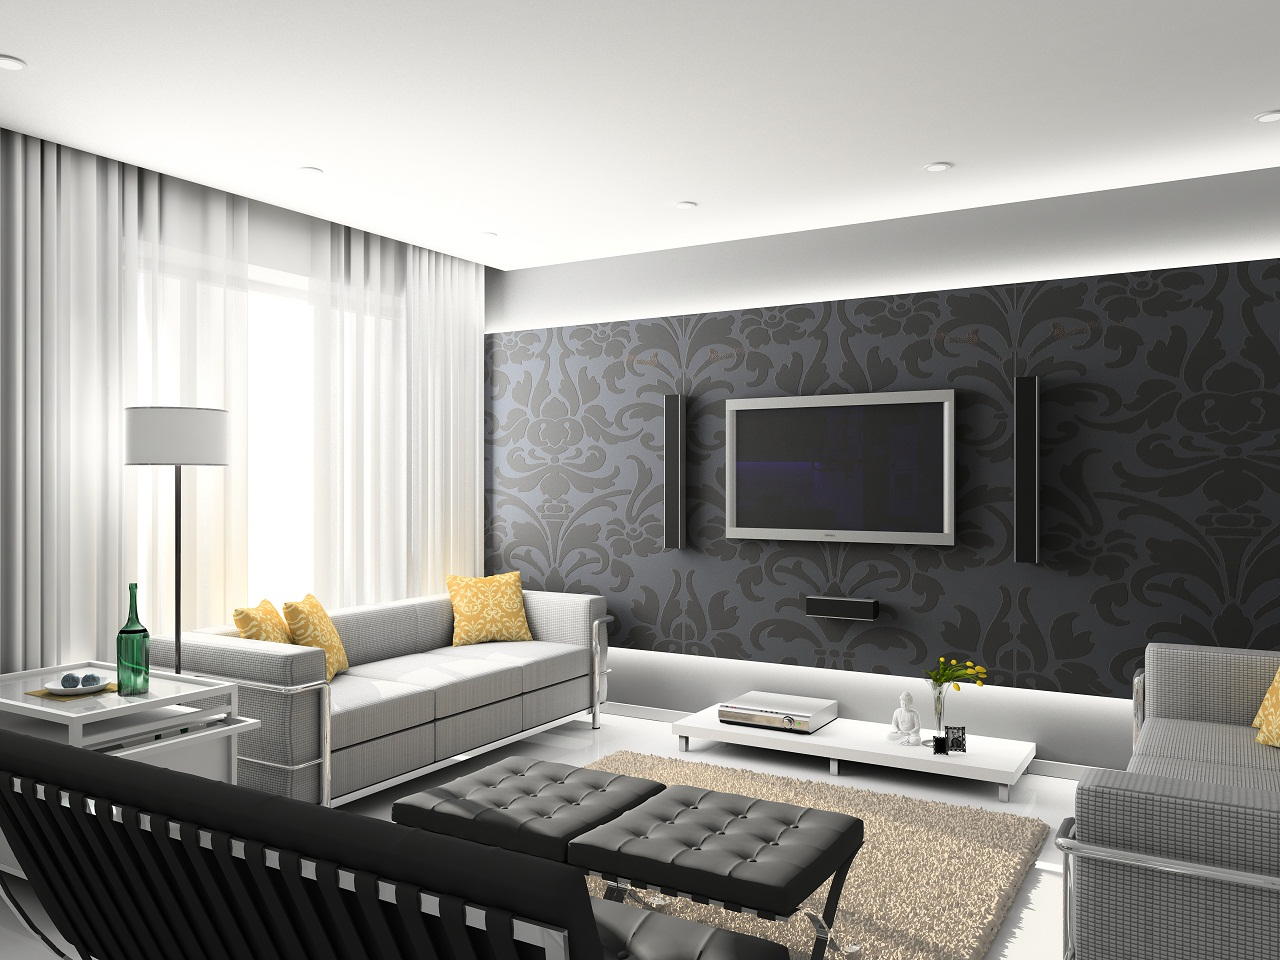 Interior Designers: Interior Design Tips